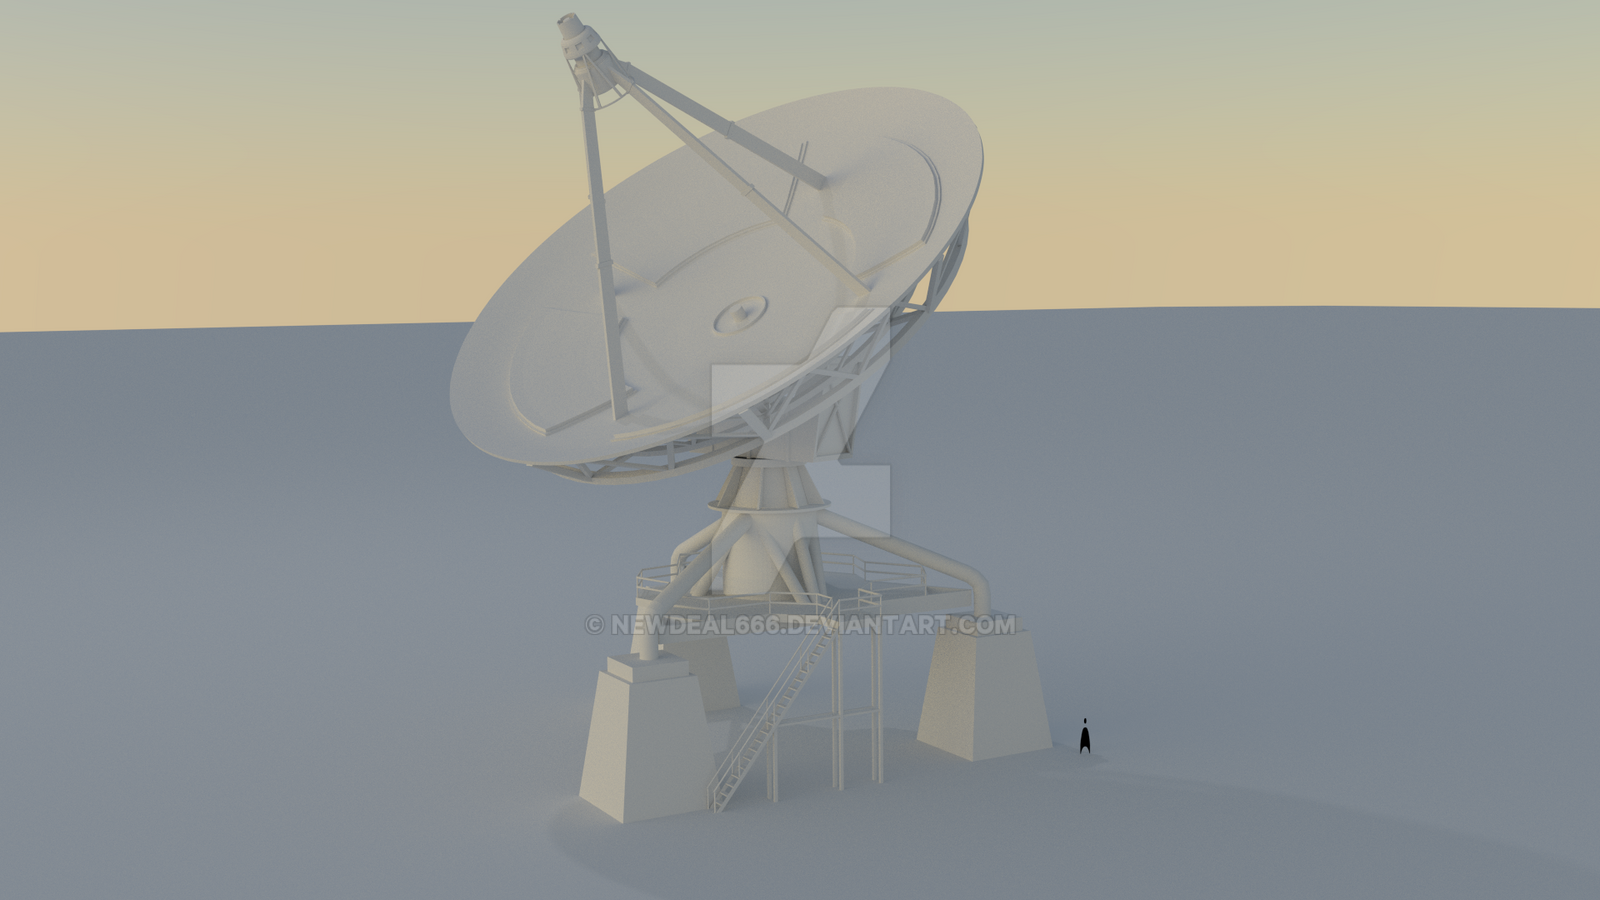 Rust Satellite Dish Concept by newdeal666